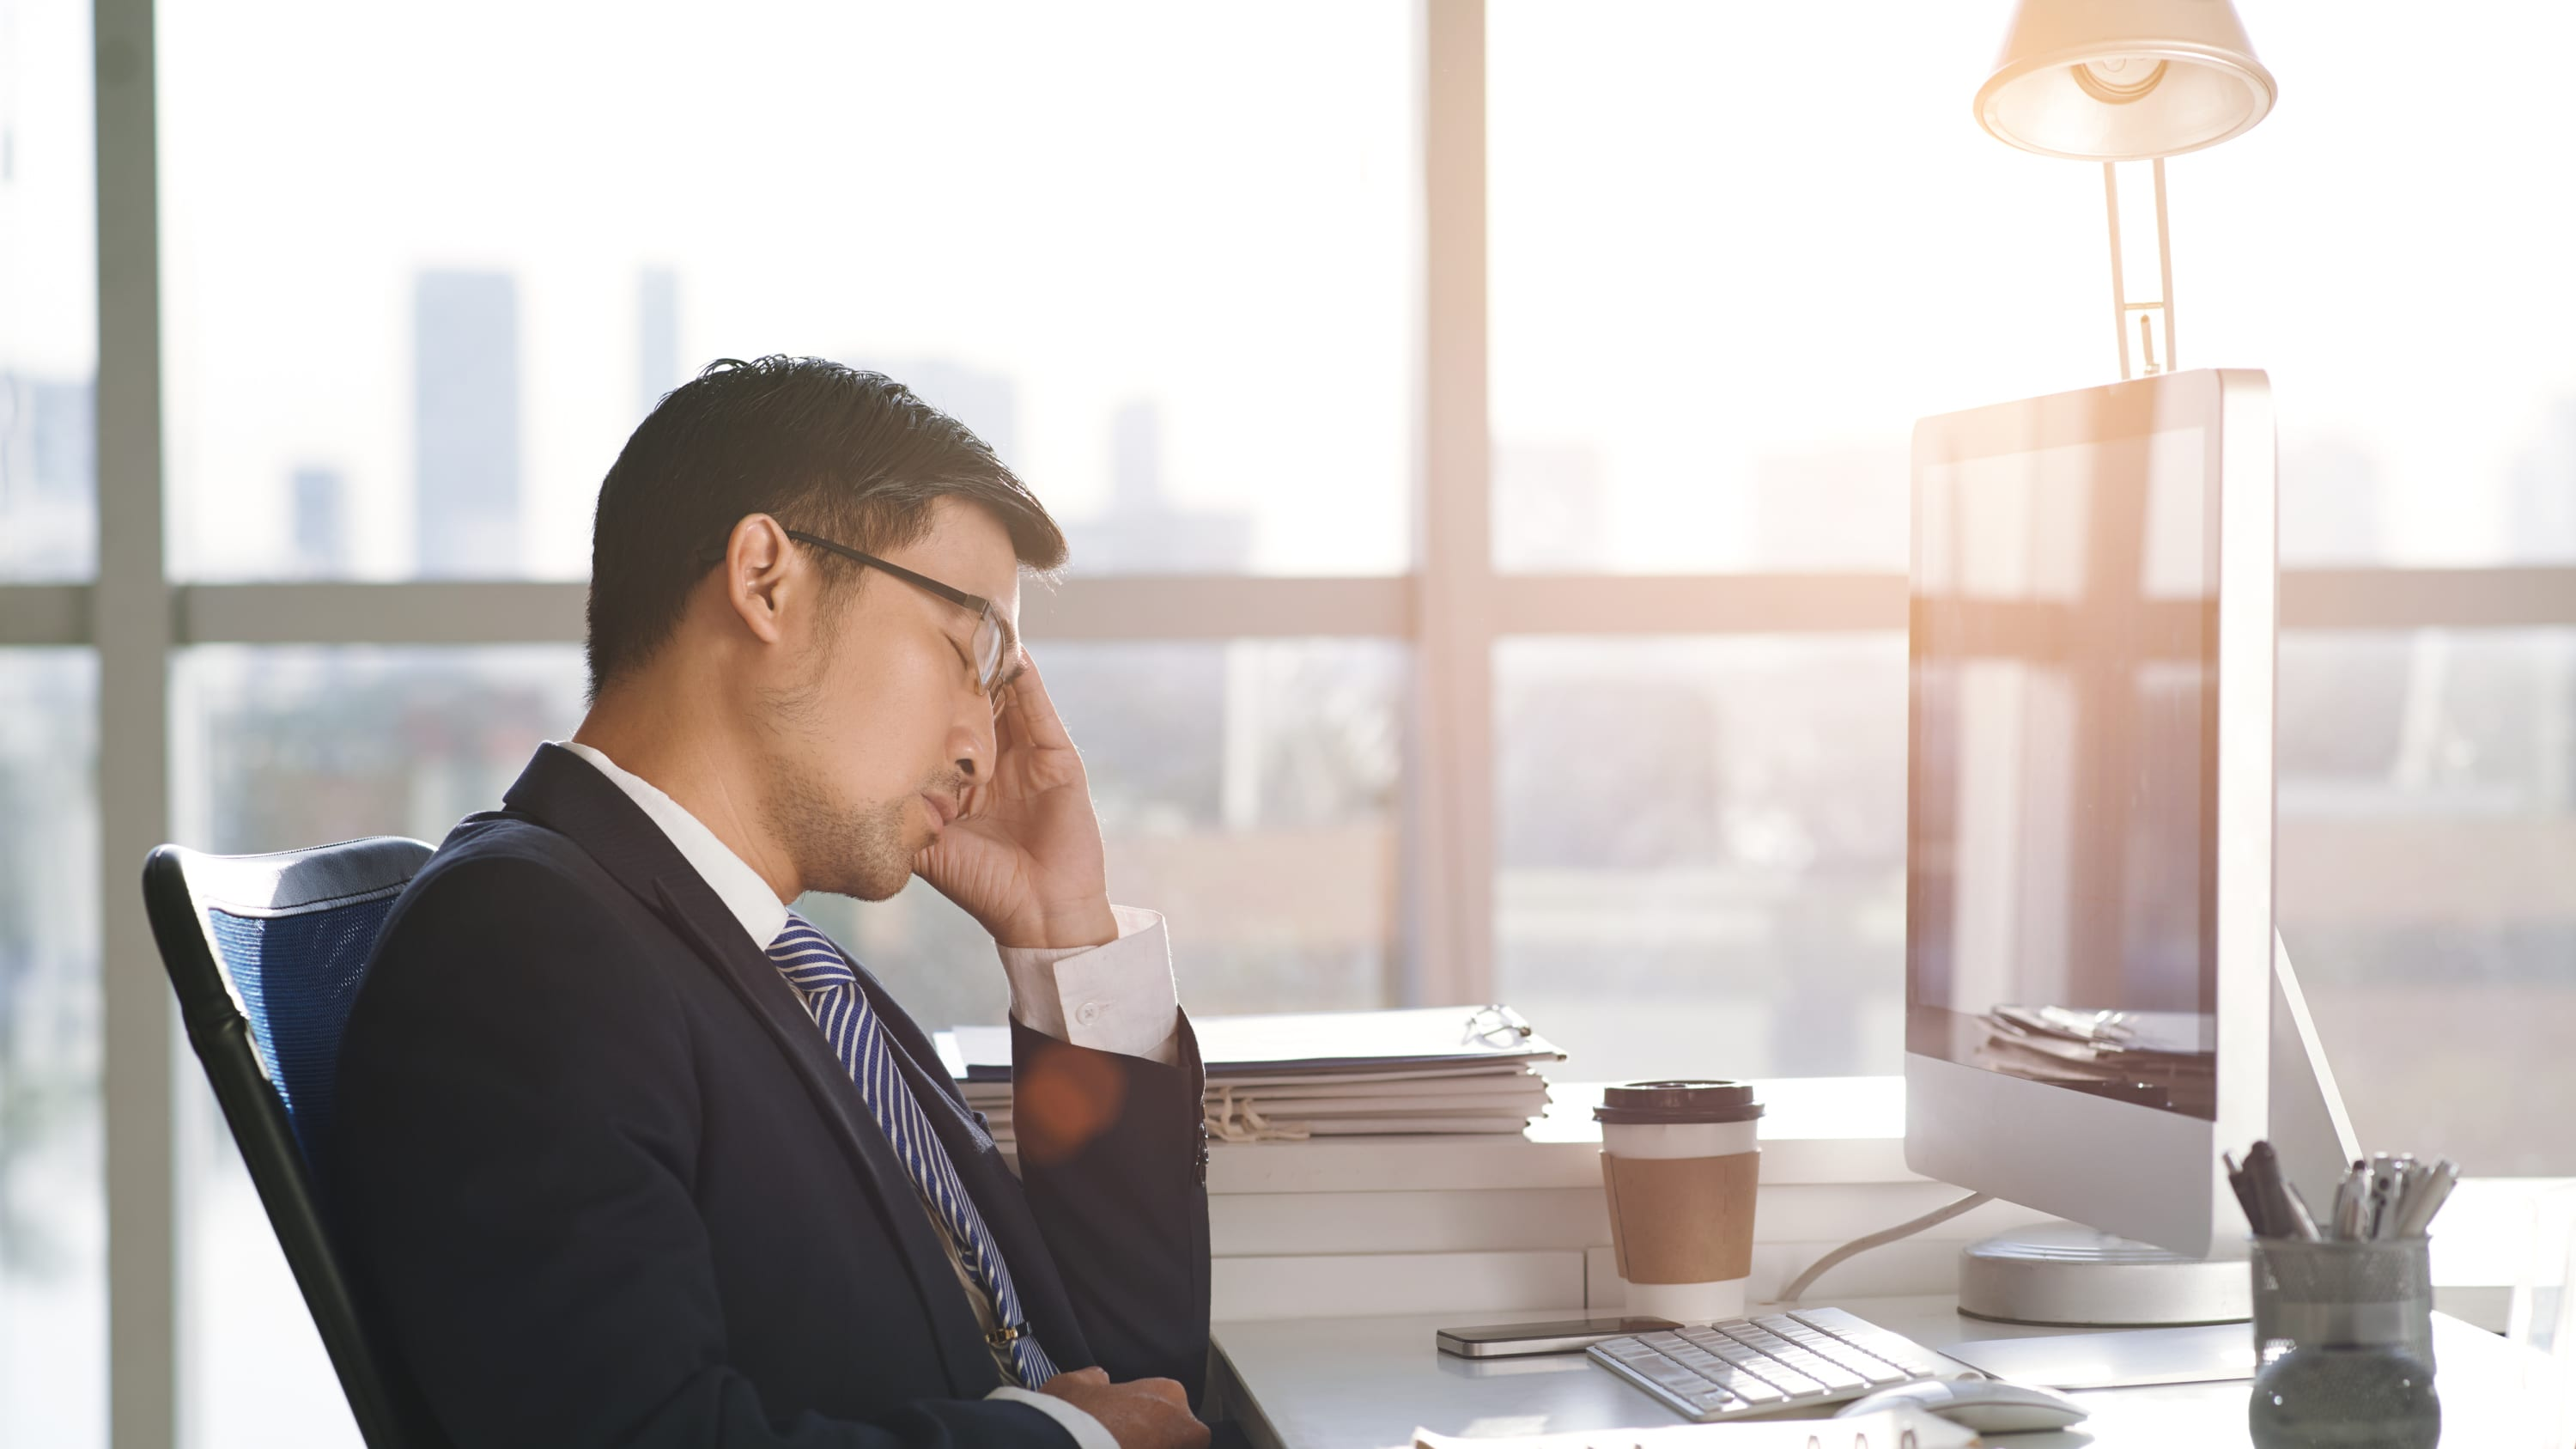 A man in an office who is struggling with insomnia is falling asleep at his desk.